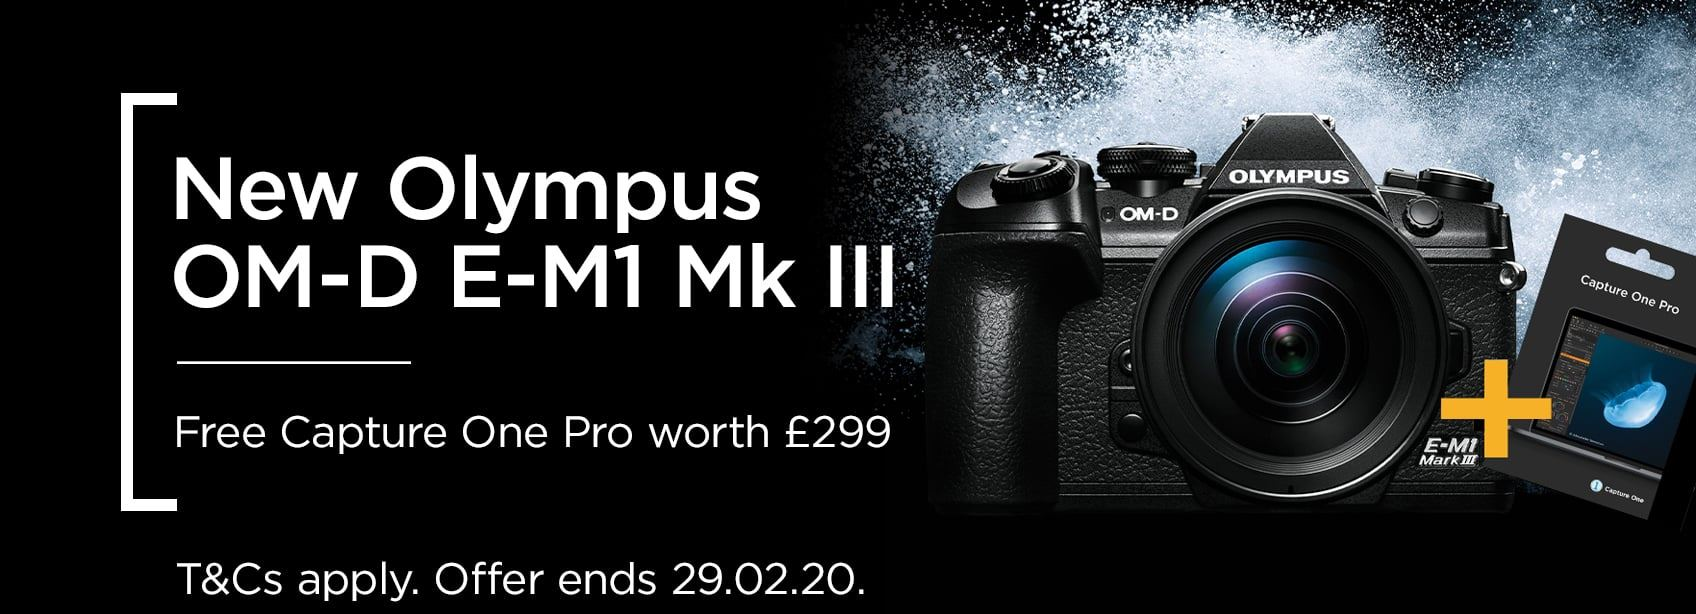 New Olympus OM-D E-M1 Mark II - Free Capture One Pro Worth £299